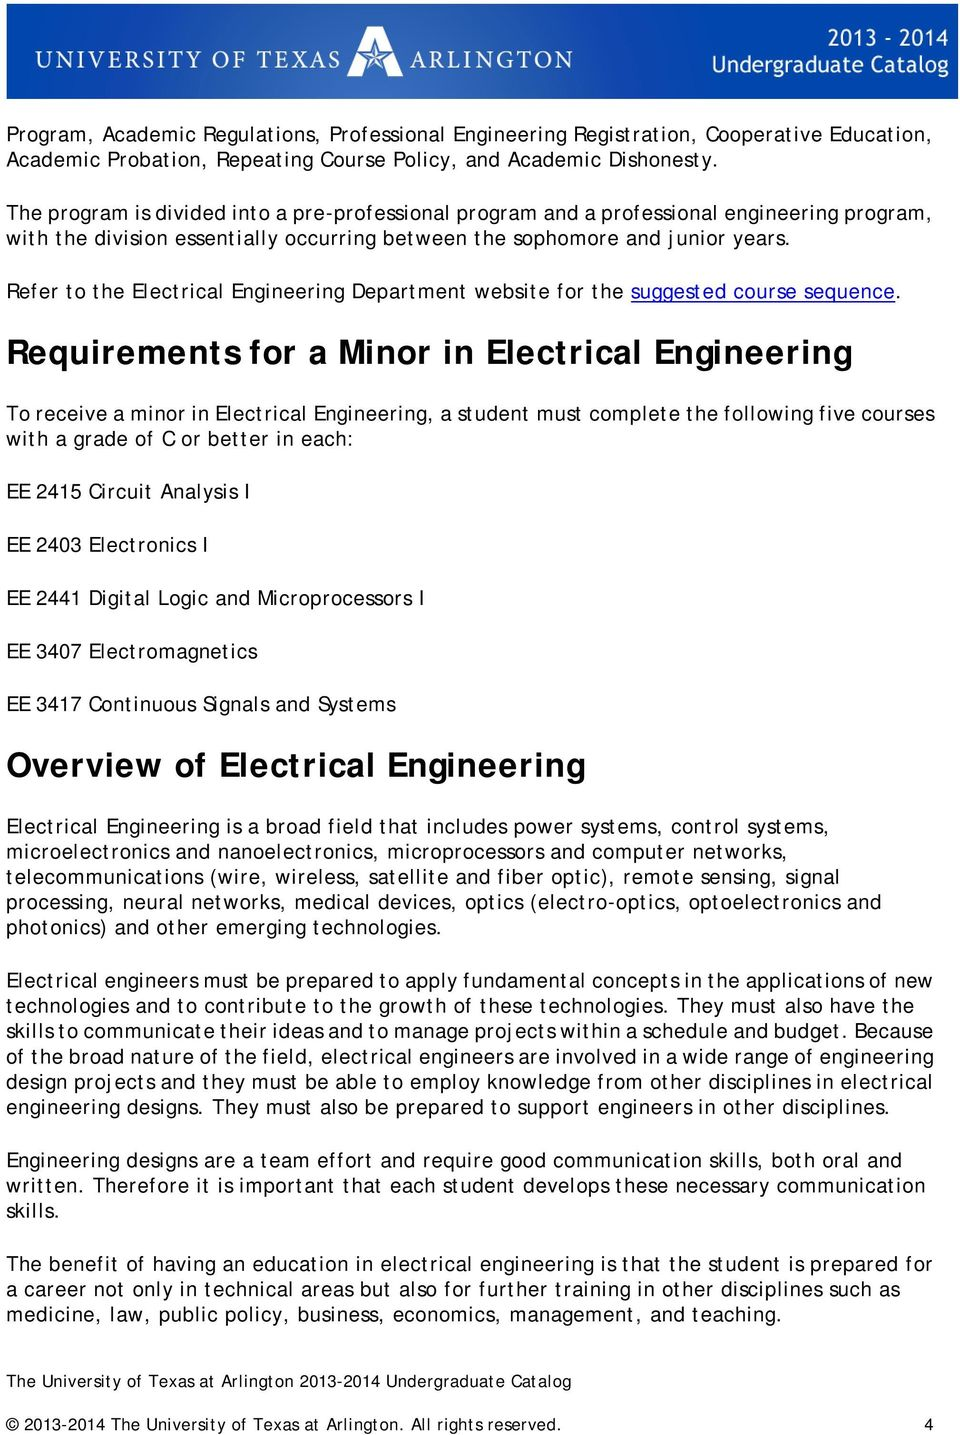 Refer to the Electrical Engineering Department website for the suggested course sequence.